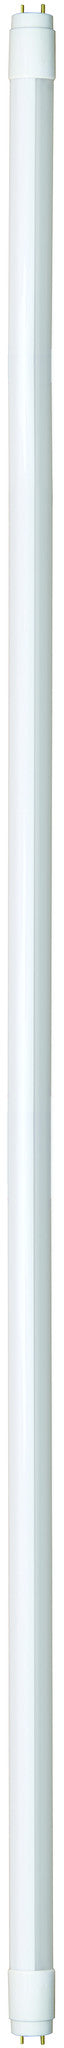 167372 - EcoWatts - Tube LED T8 G13 150cm 25W 4000K 2000Lm